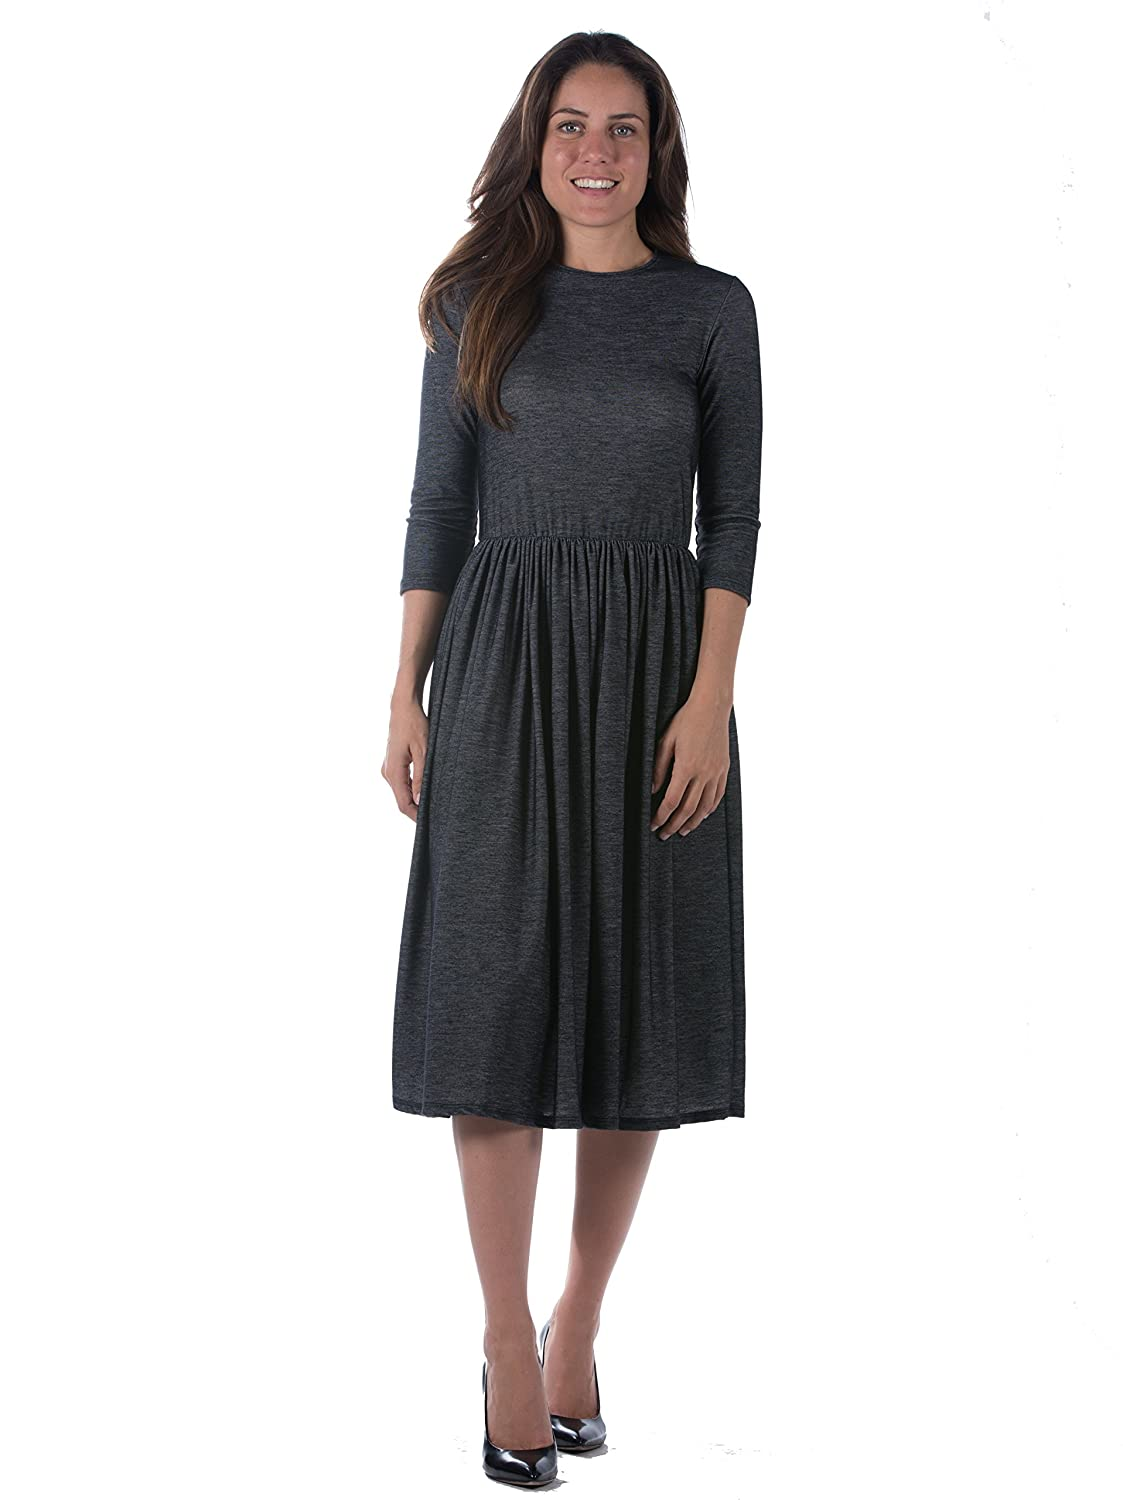 Go Couture Modest Women's Dark Indigo Ruched Waist 3/4 Length Sleeve Dress